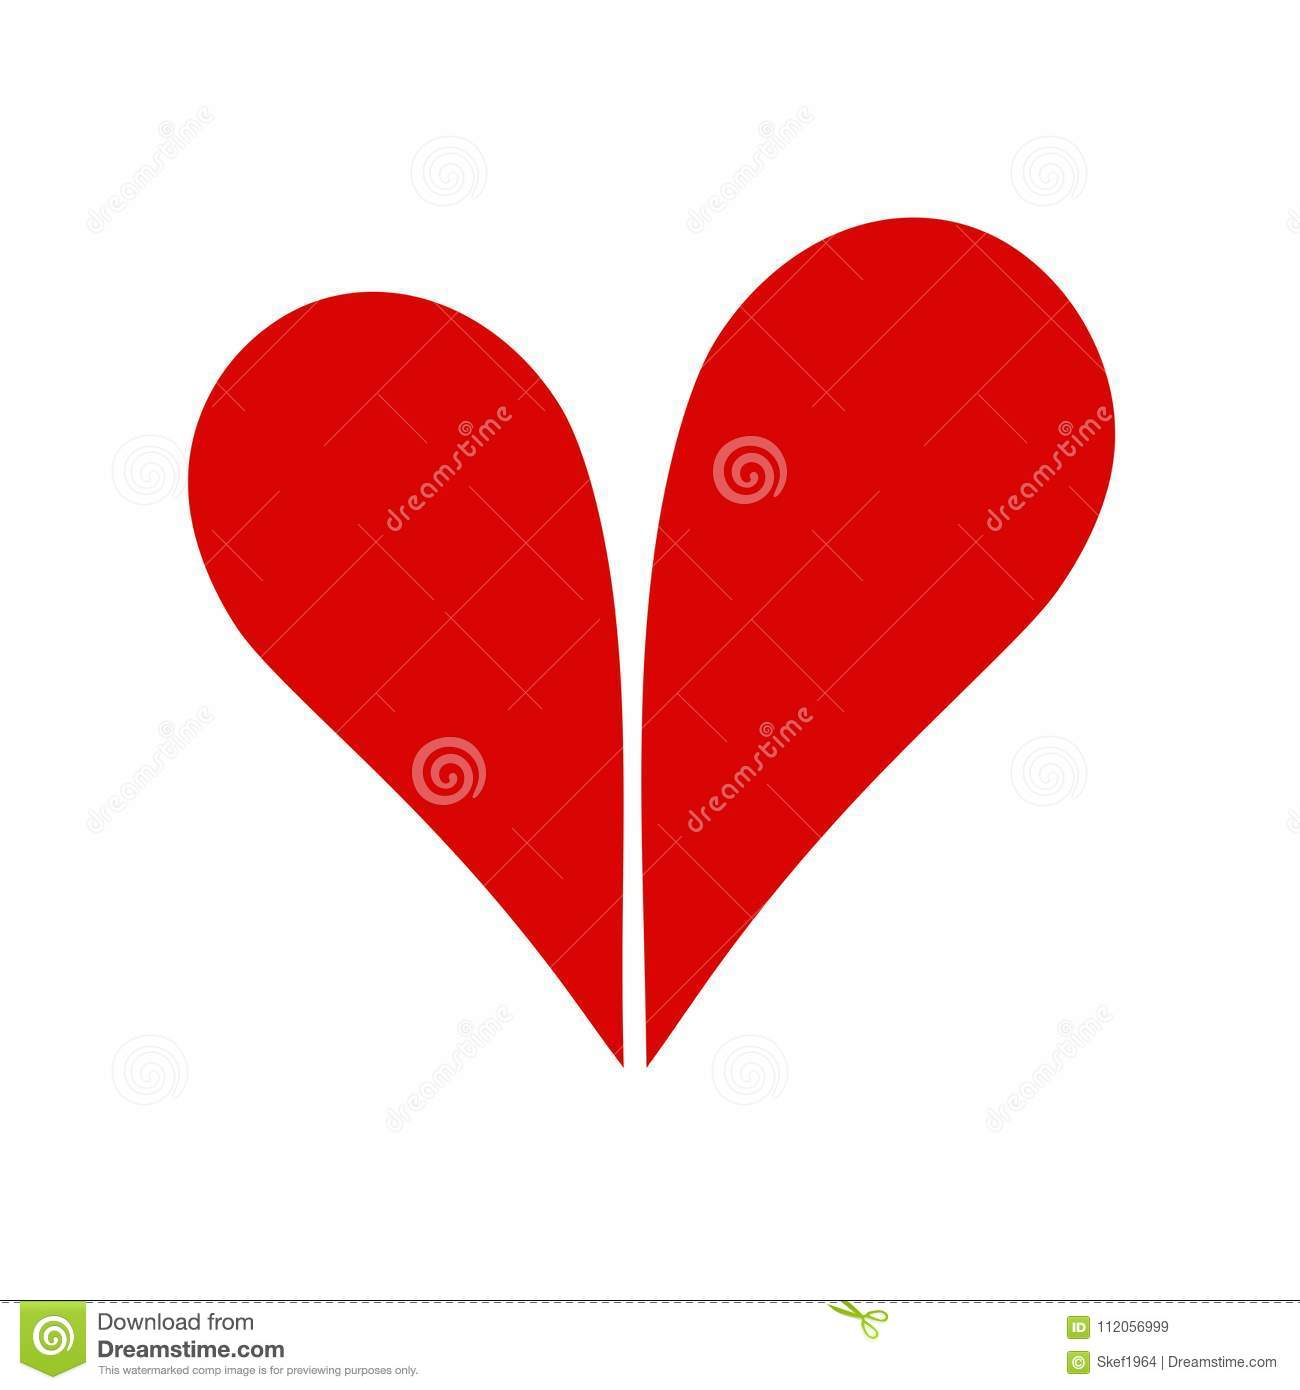 Two Halves Of One Heart Love Concept Icon Bitmap Image Stock